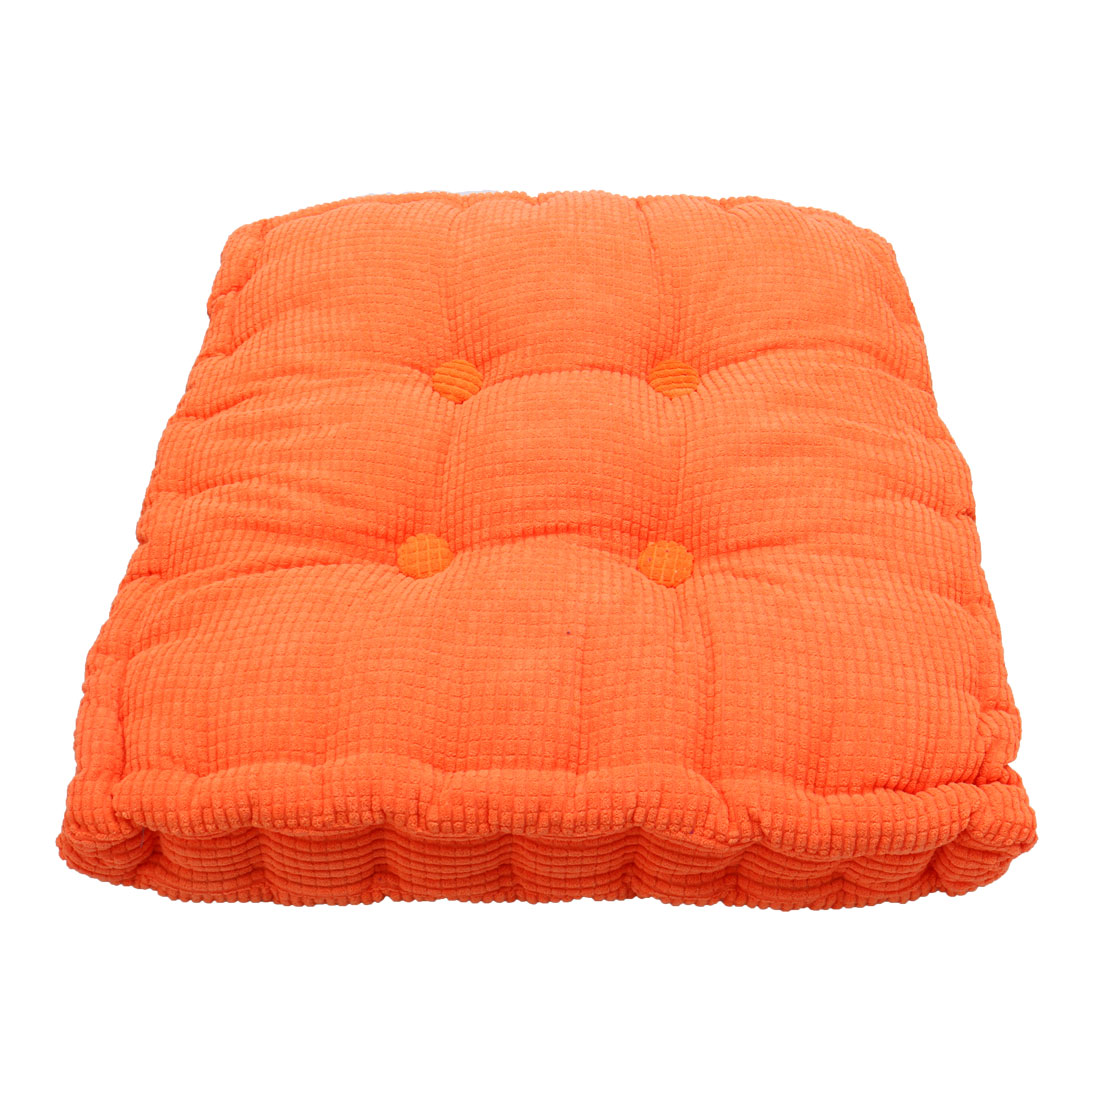 Home Office Corduroy Square Shaped Anti Slip Seat Chair Cushion Pad Cover Orange